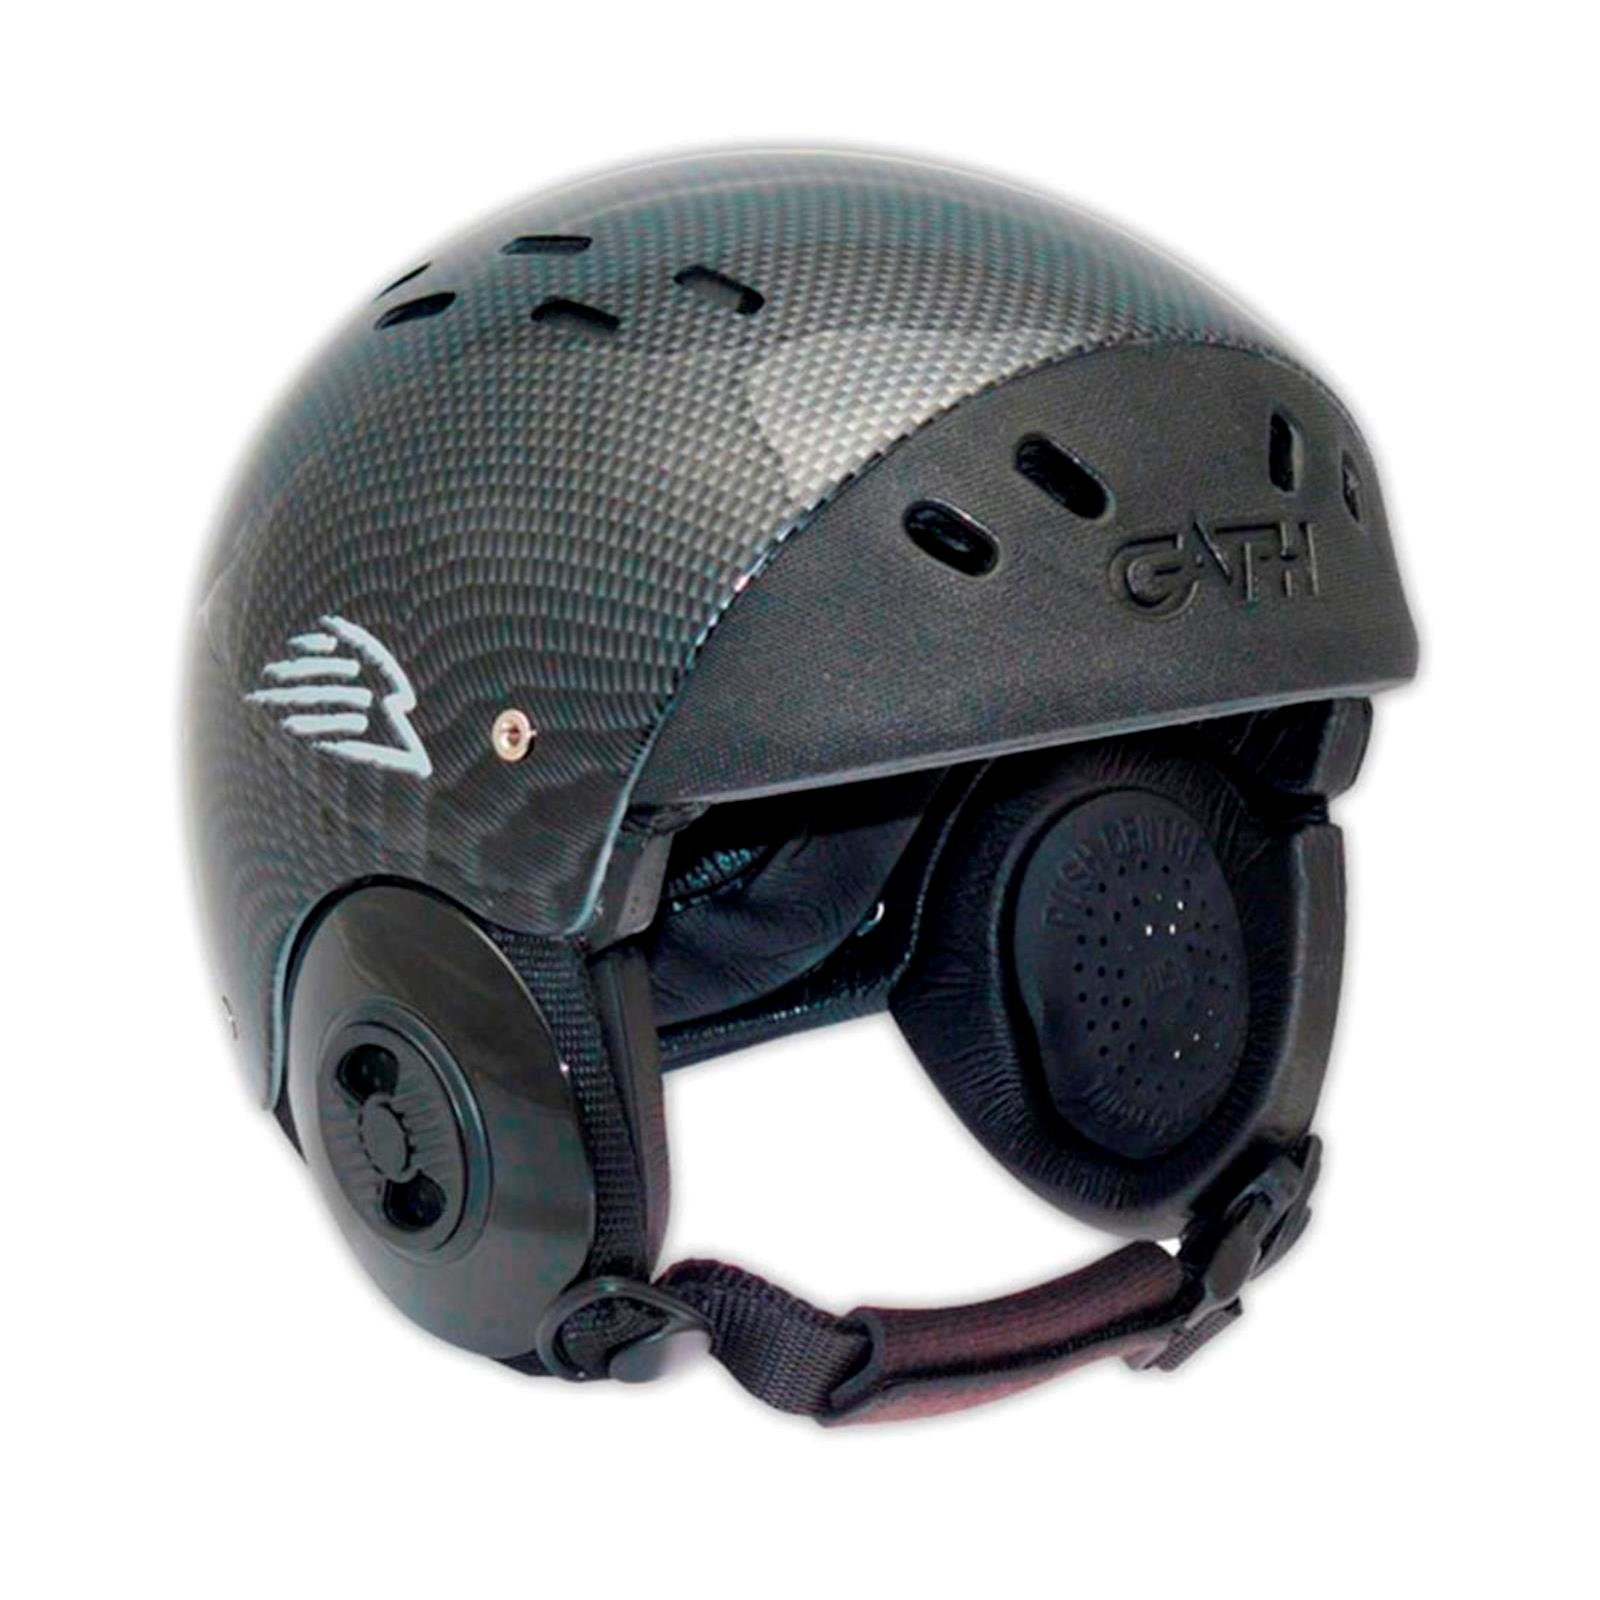 GATH Wassersport Helm SFC Convertible XS Carbon